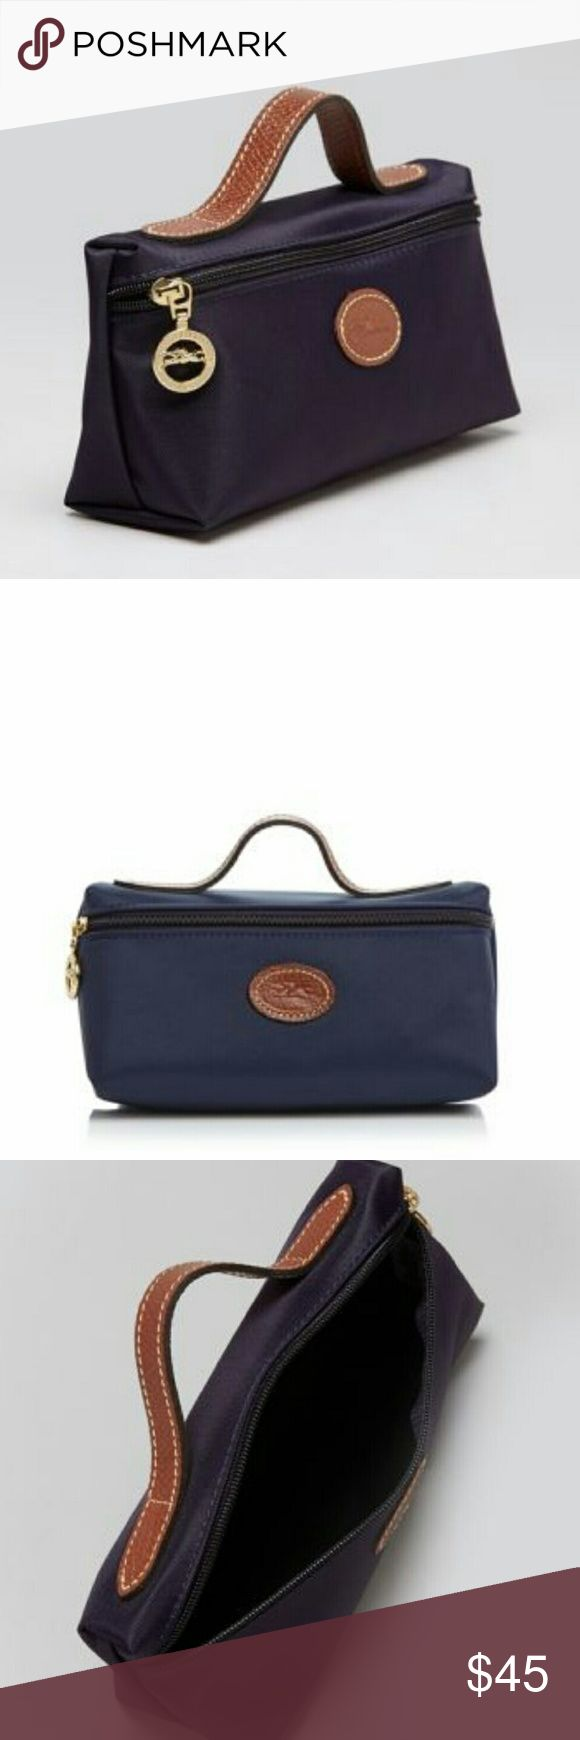 "Longchamp Cosmetic Case Lewis Pliage ?? Longchamp's nylon cosmetic case is the essential we can't live without! Ideally sized for extras: gloss, girlie things, gadgets, ect. 7.5""L x 2.5""W x 4""H navy with leather handle and logo. Zip closure. Longchamp Bags Cosmetic Bags & Cases"